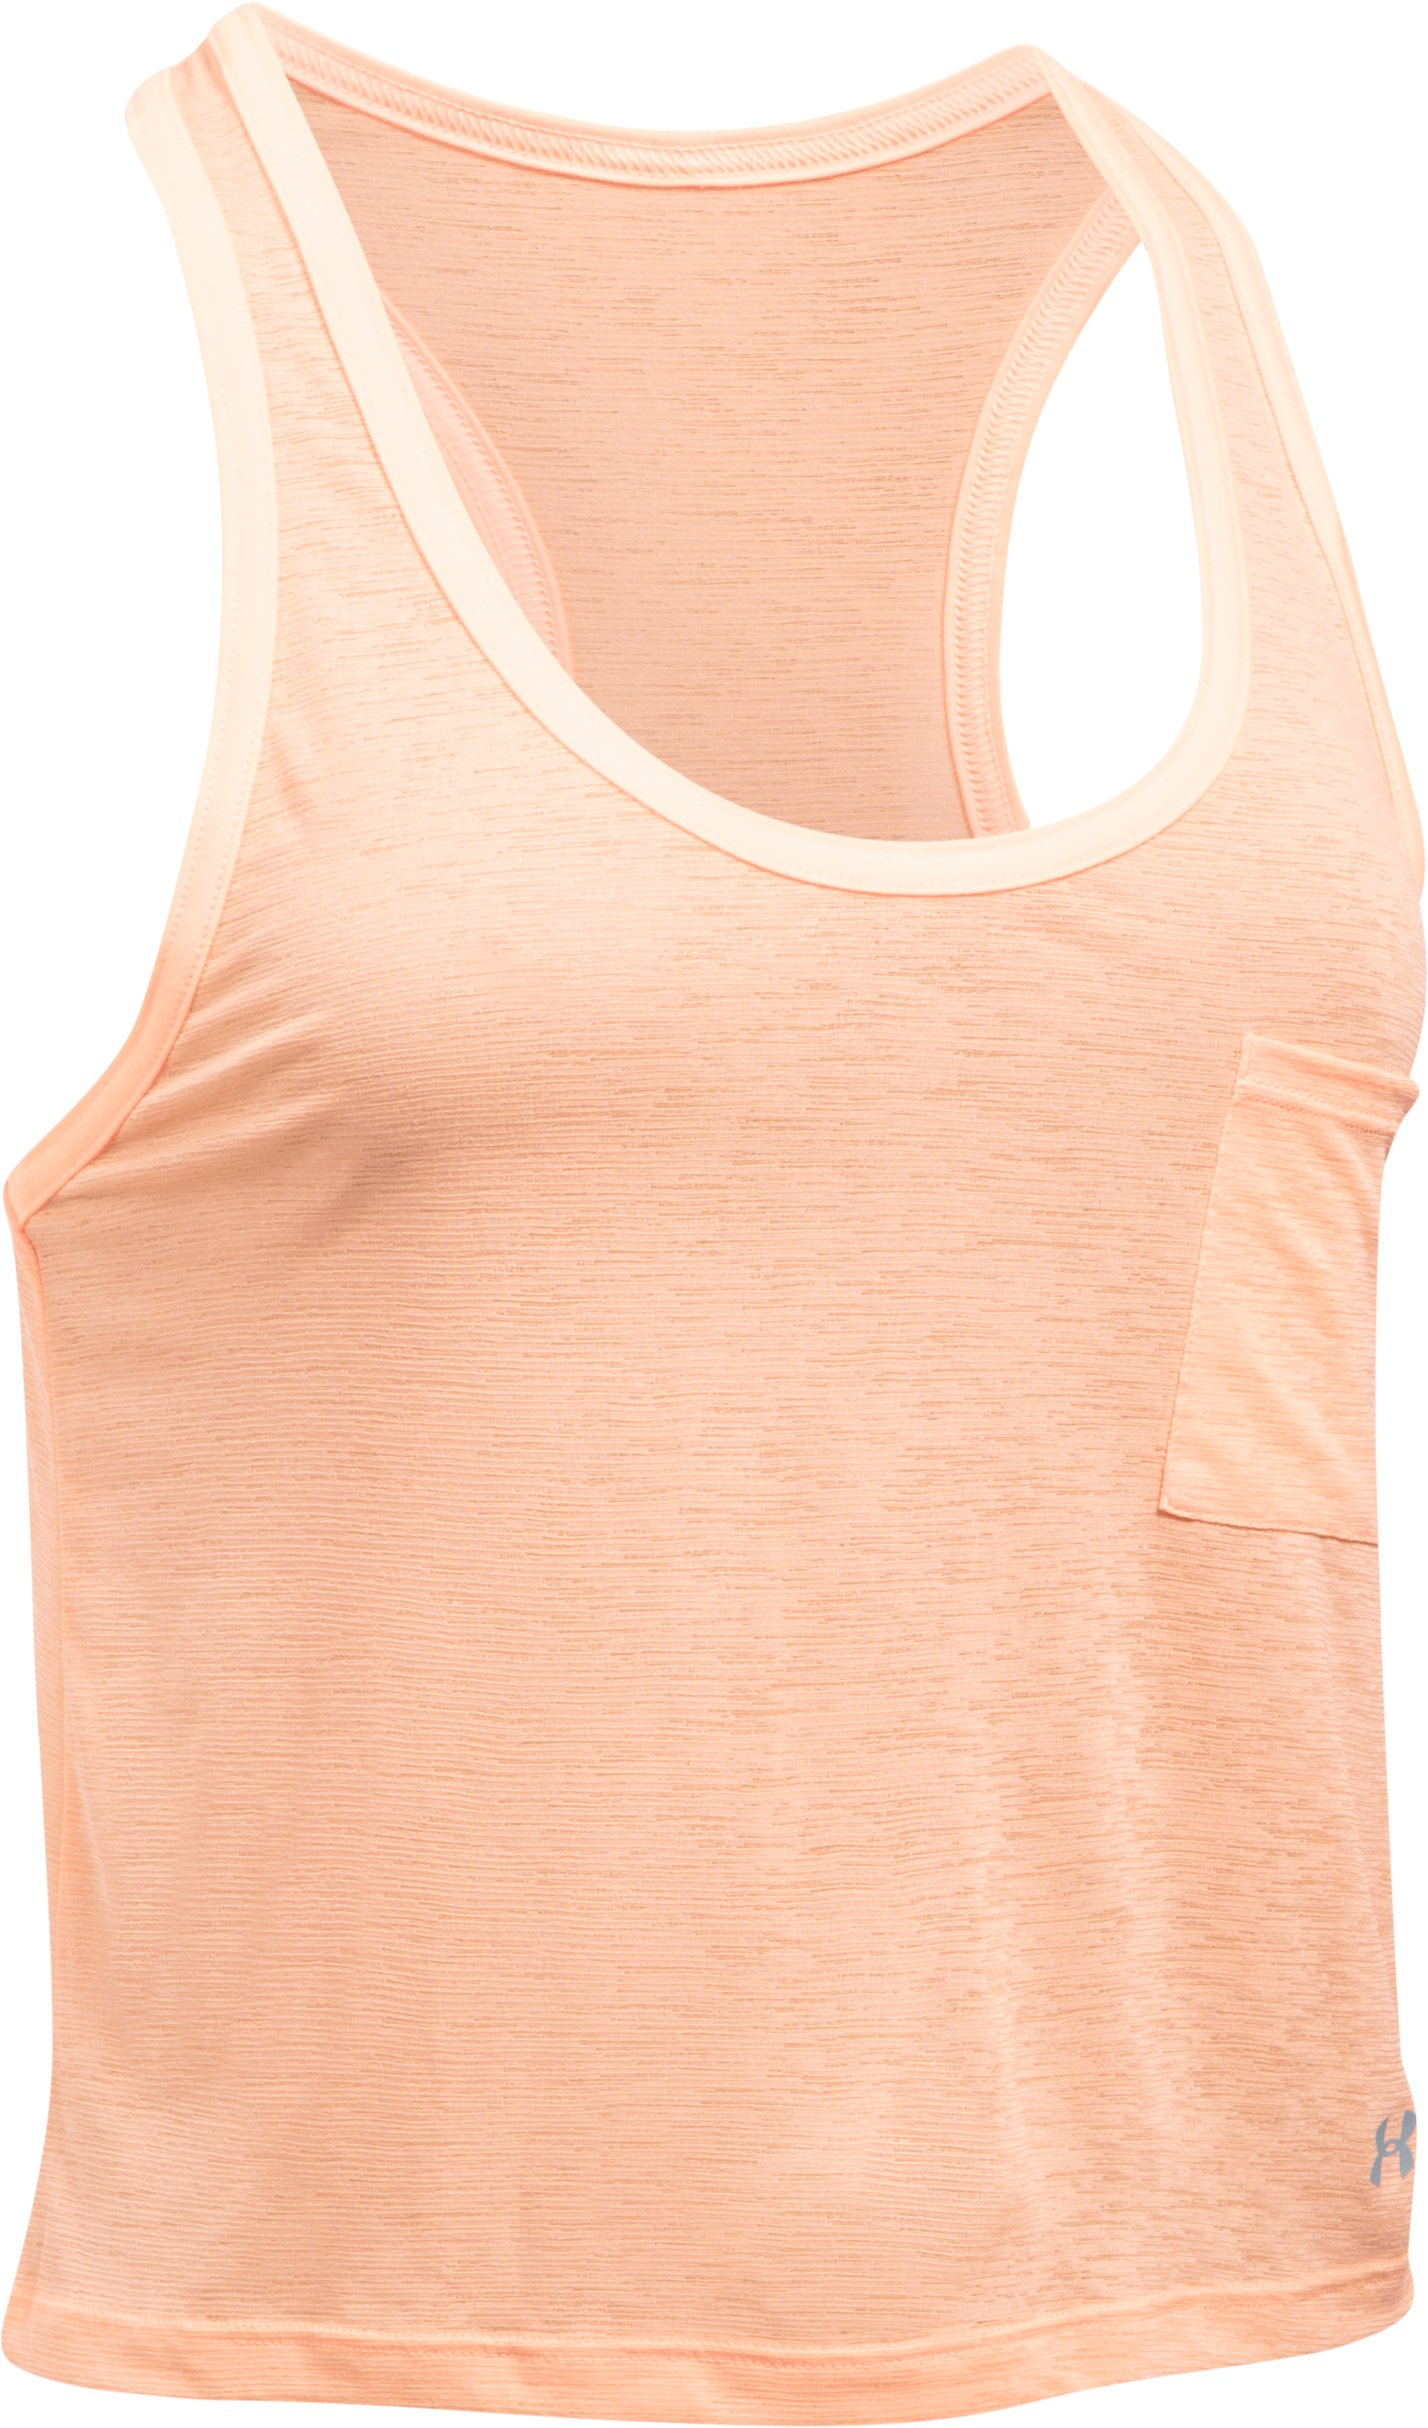 Women's UA Tech™ Slub Shorty Tank, PLAYFUL PEACH, undefined